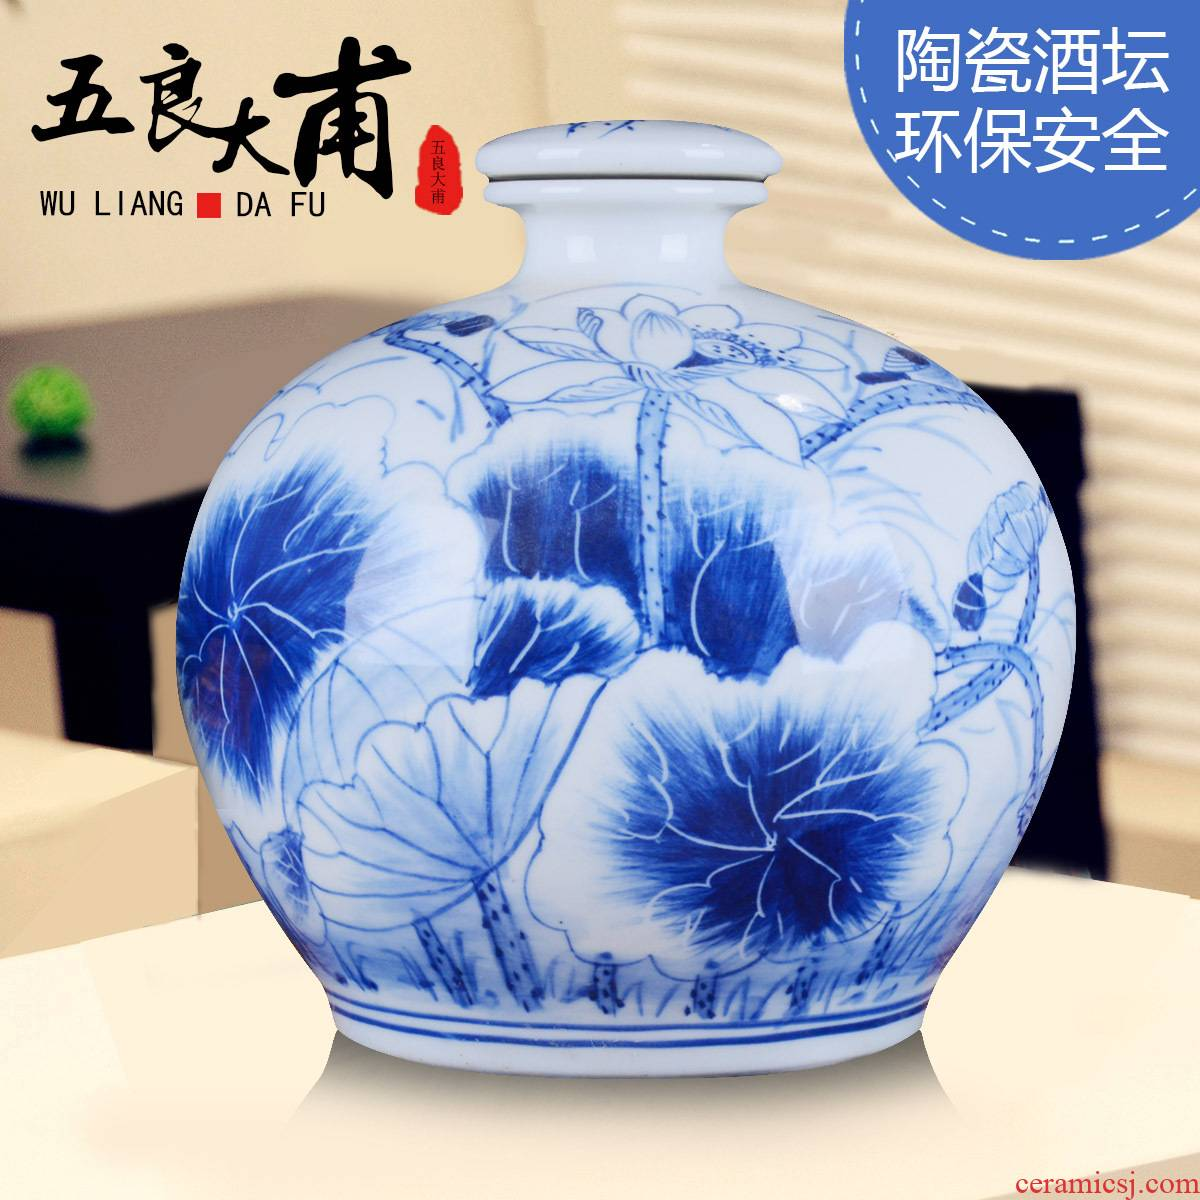 Hand - made jingdezhen ceramic bottle 5 jins of an empty bottle mercifully bottles decorative bottle small jars sealed bottle